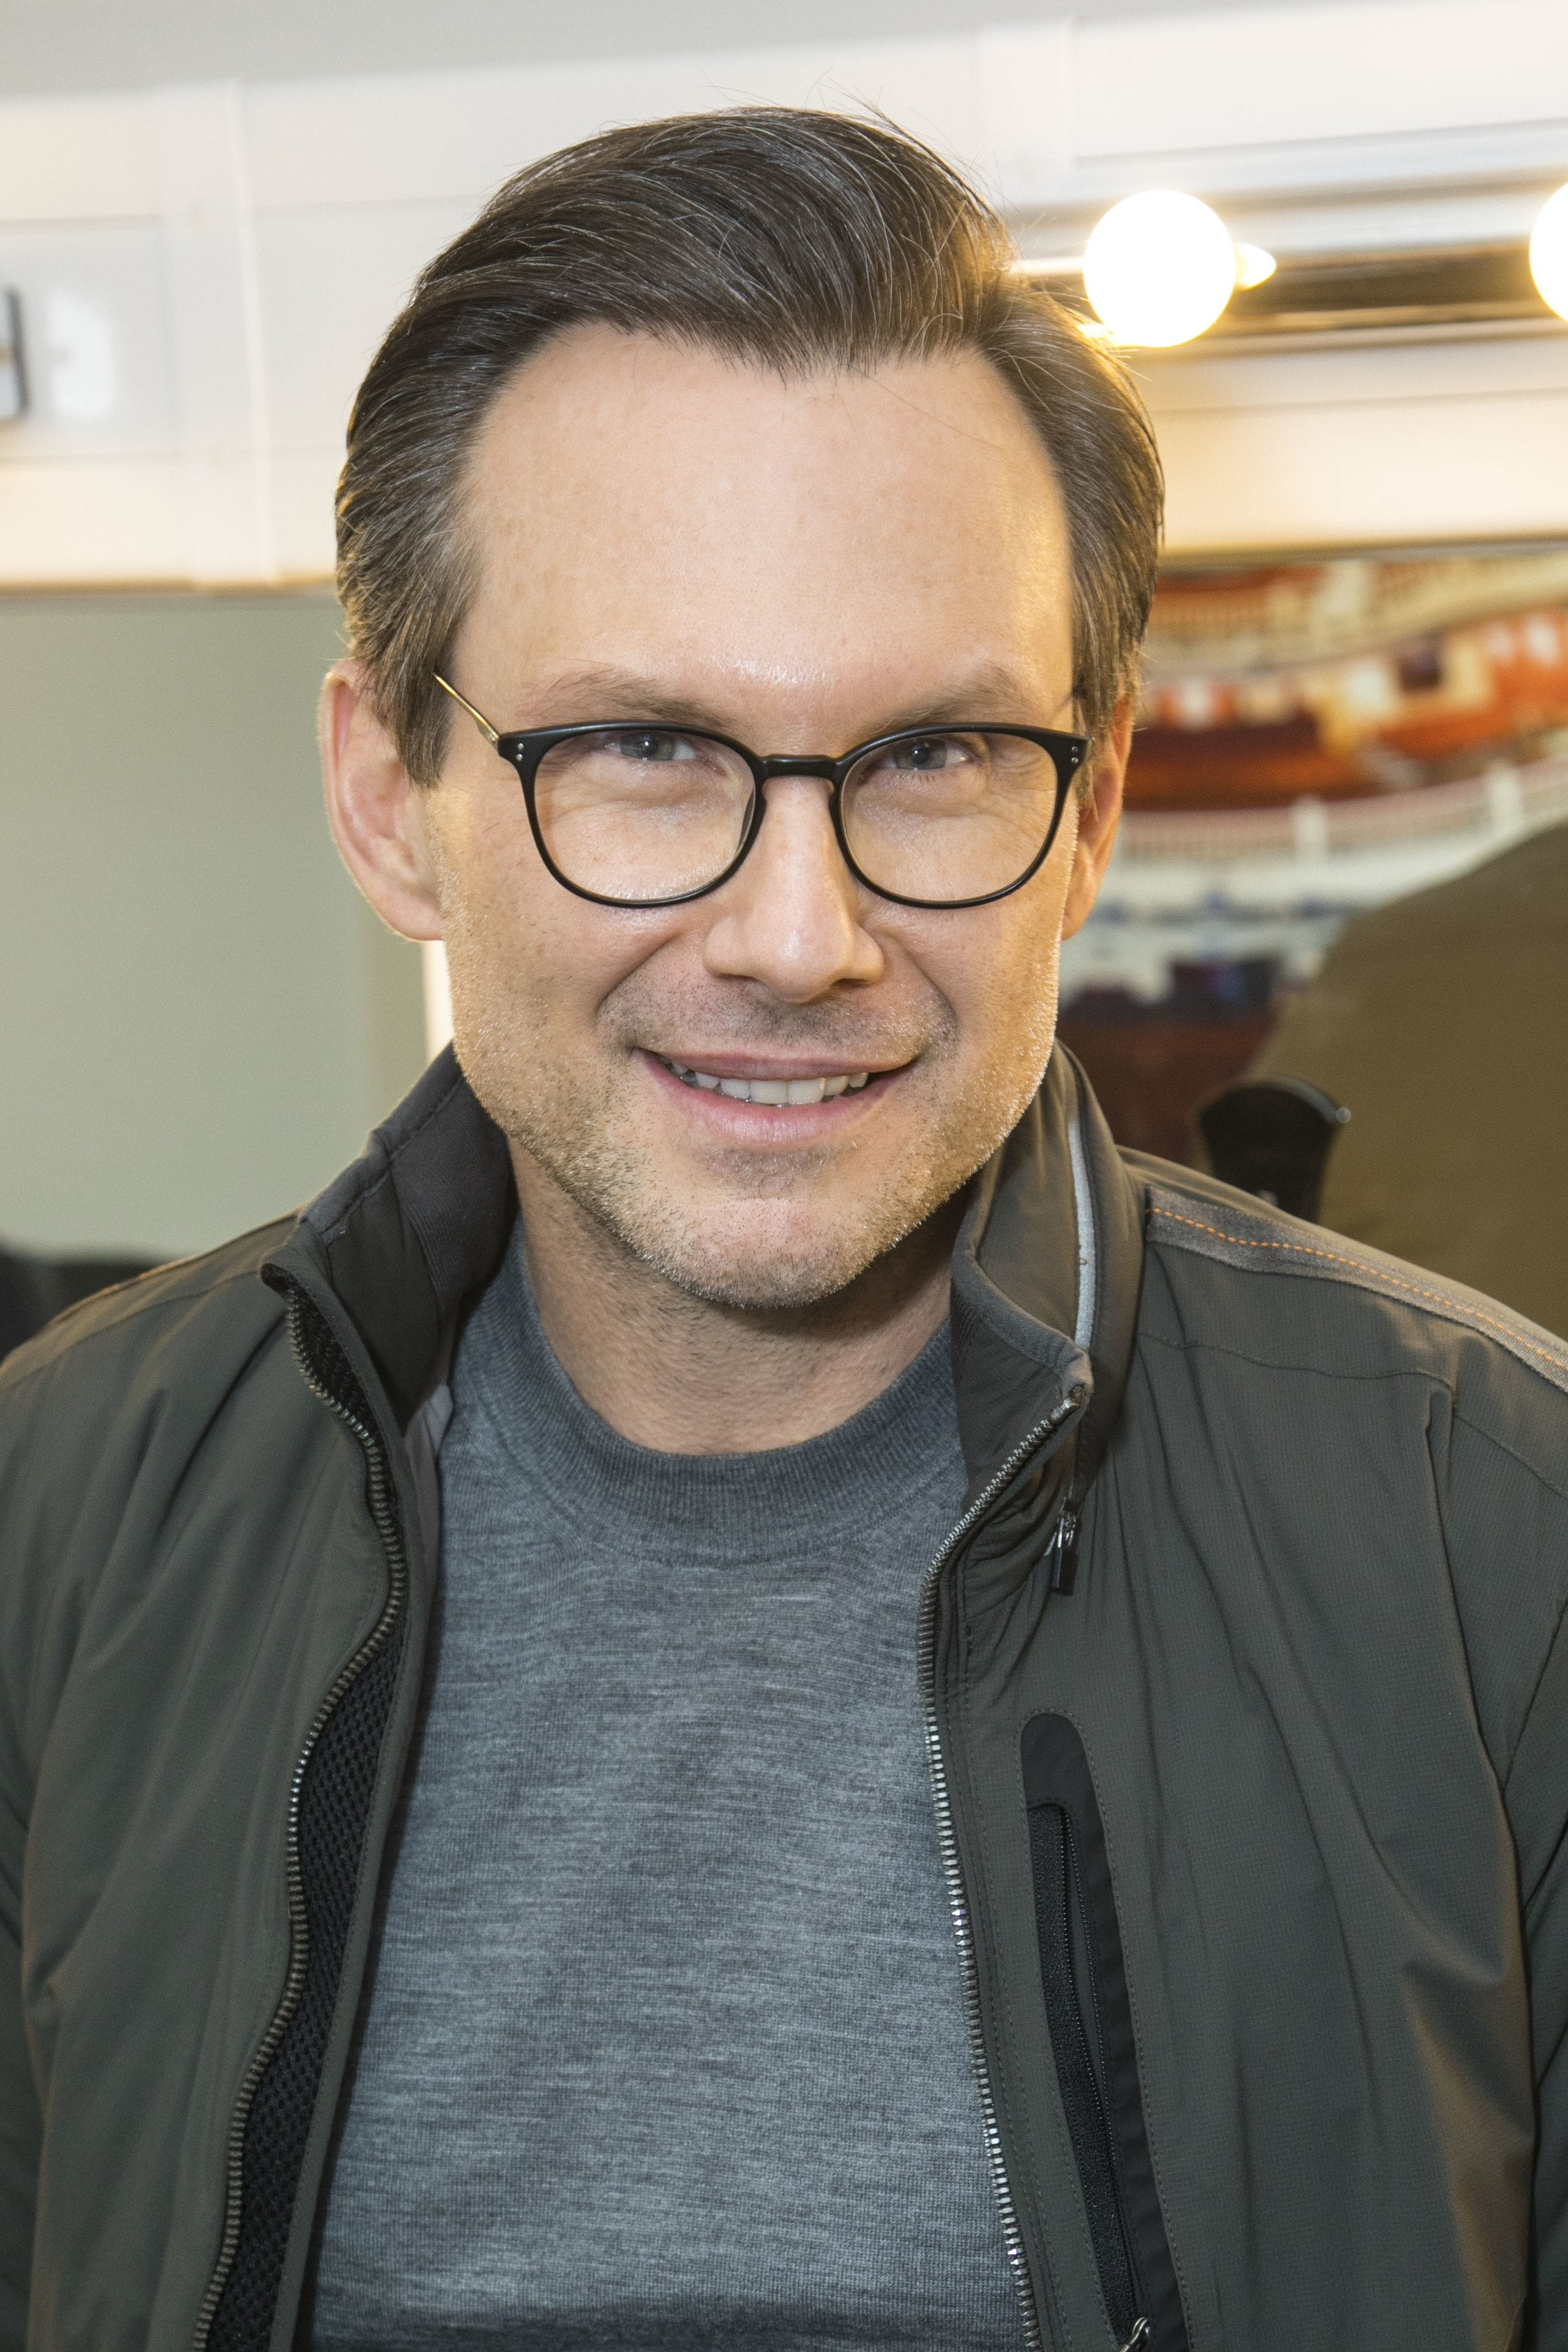 Hairstyles for men with thin hair: Christian Slater wearing glasses with slicked back hair